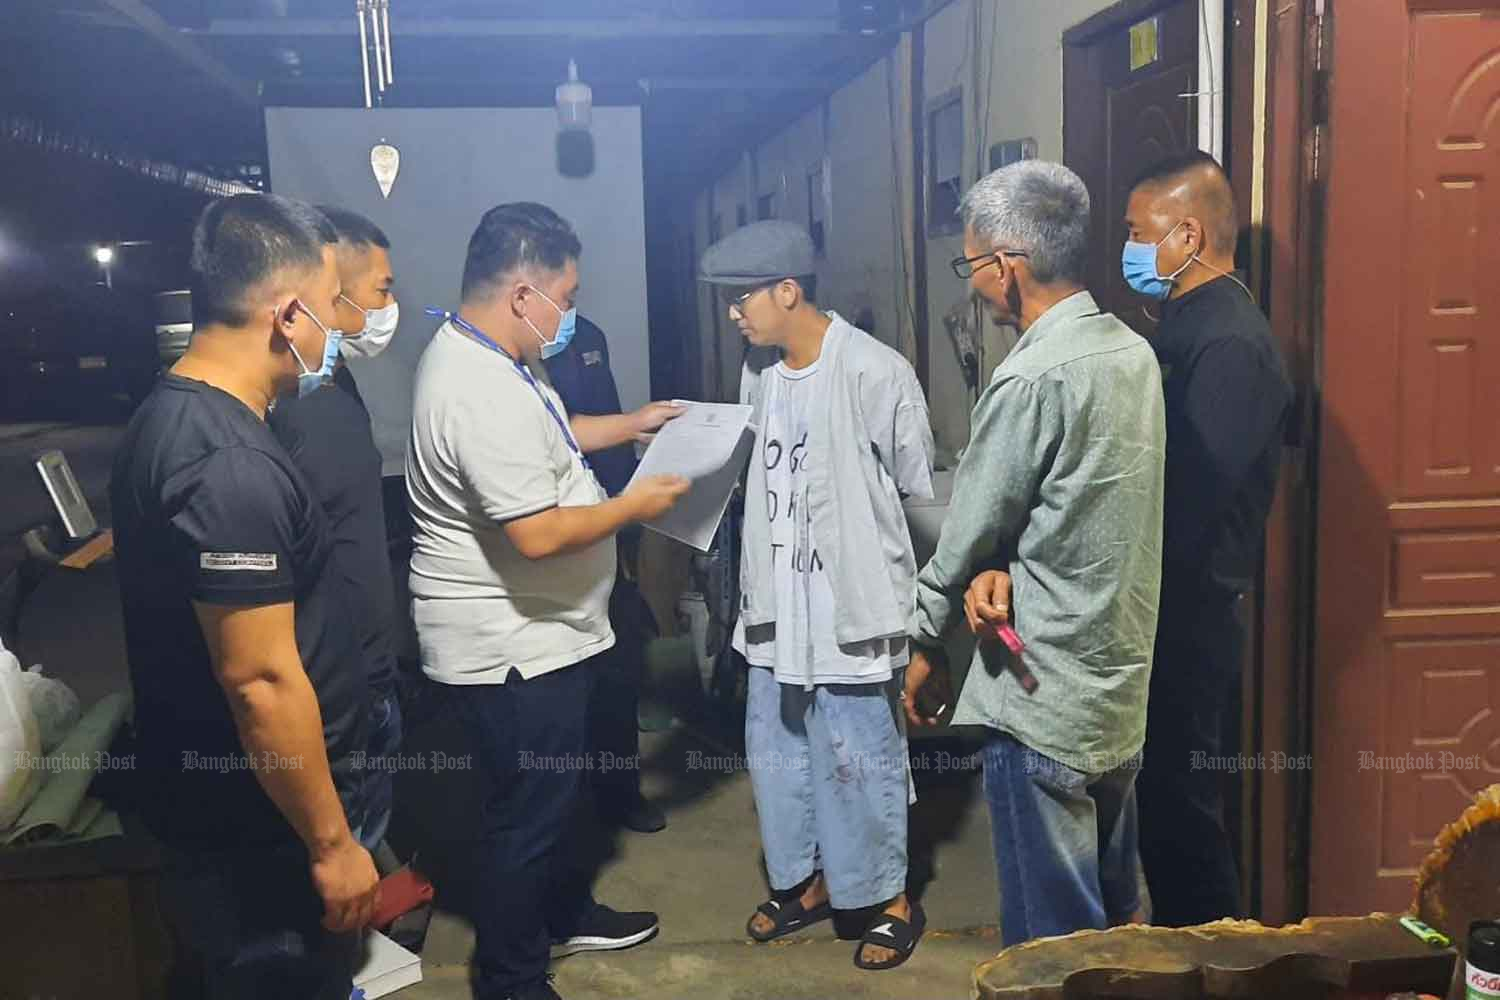 Police arrest singer Chai-amorn Kaewwiboonpan (wearing the hat), aka Ammy The Bottom Blues, at a rented room in Ayutthaya province early on Wednesday morning. (Photo supplied)